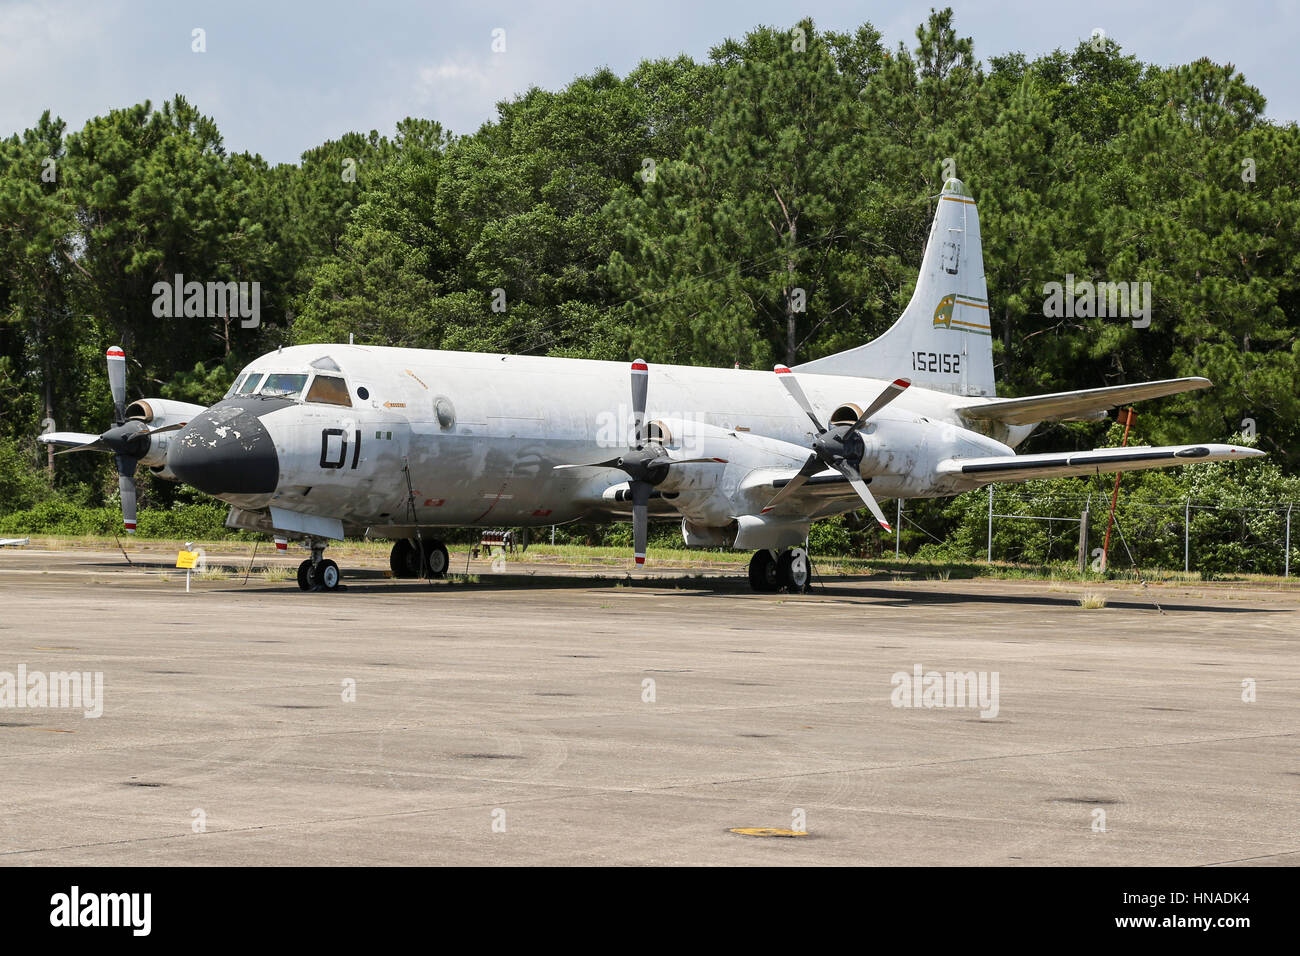 Lockheed P-3 Orion - a four-engine turboprop anti-submarine and maritime surveillance aircraft - Stock Image